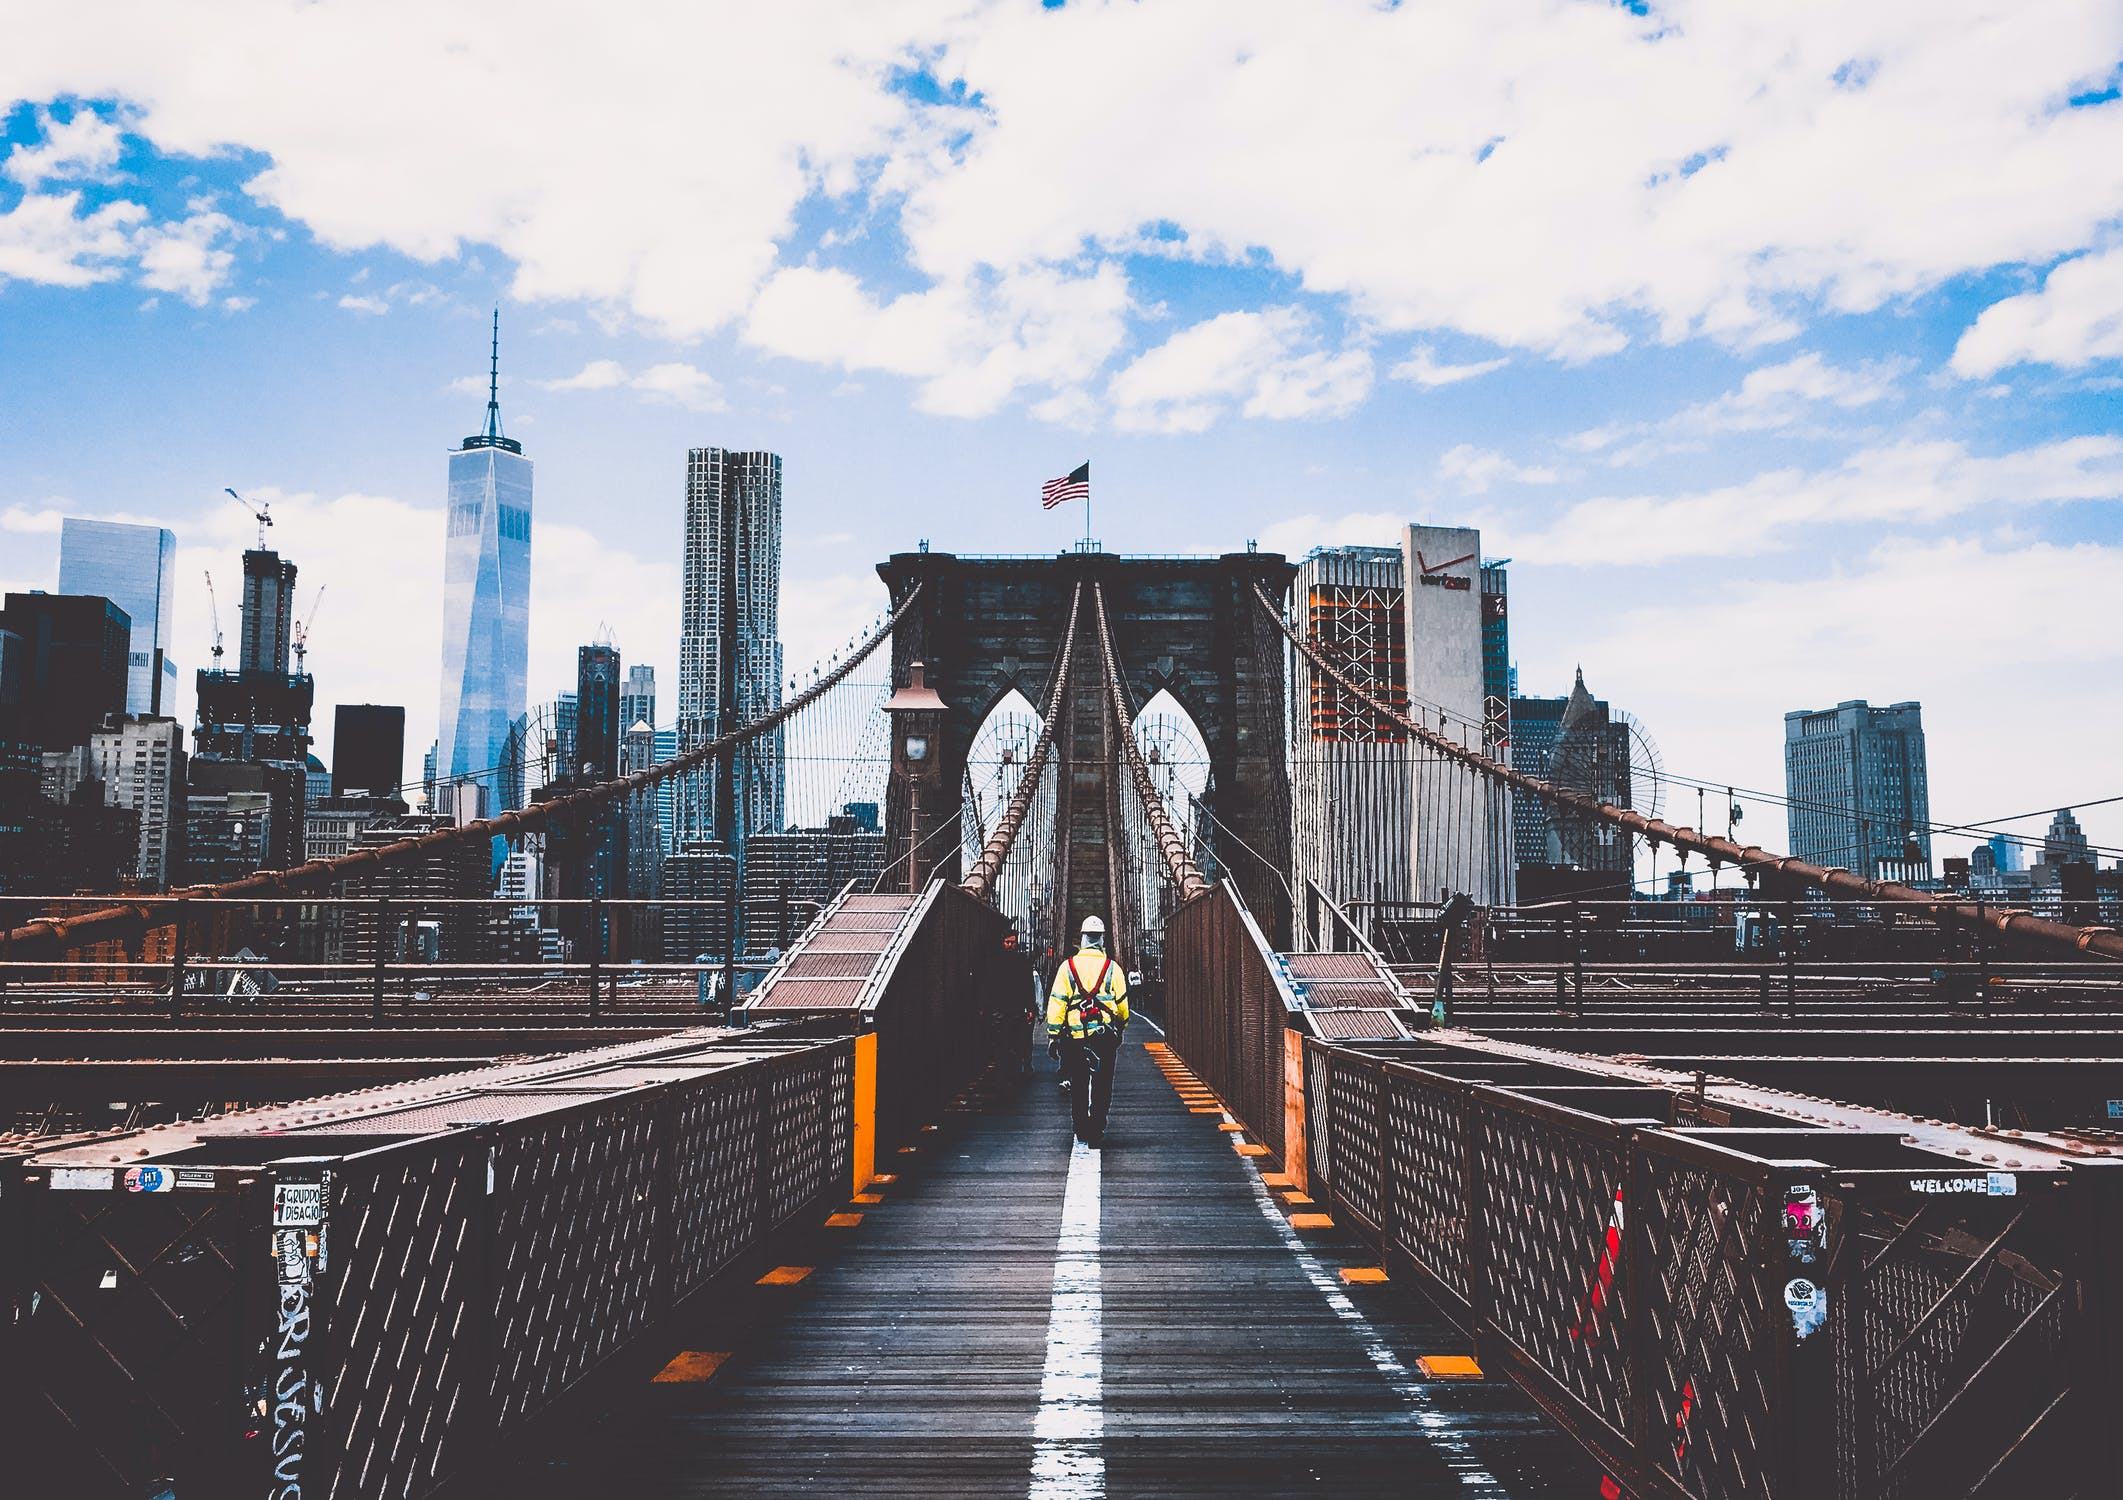 A man going to New York - which makes Hoboken one of the best cities for singles in New Jersey.